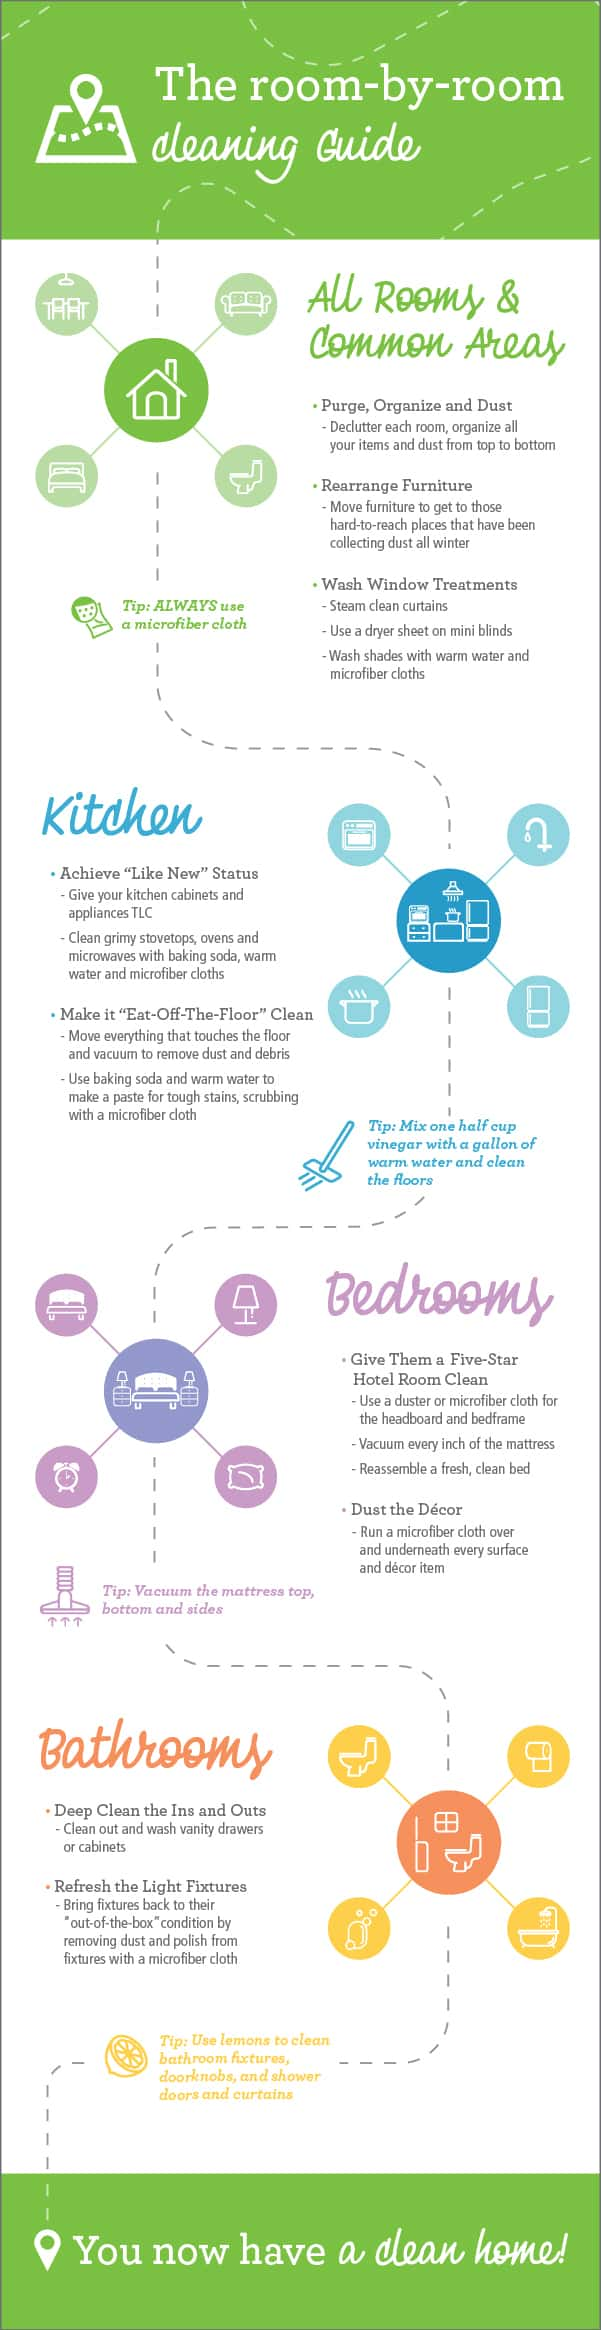 Merry Maids expert spring cleaning room-by-room attack plan to get your house tidy and clean!